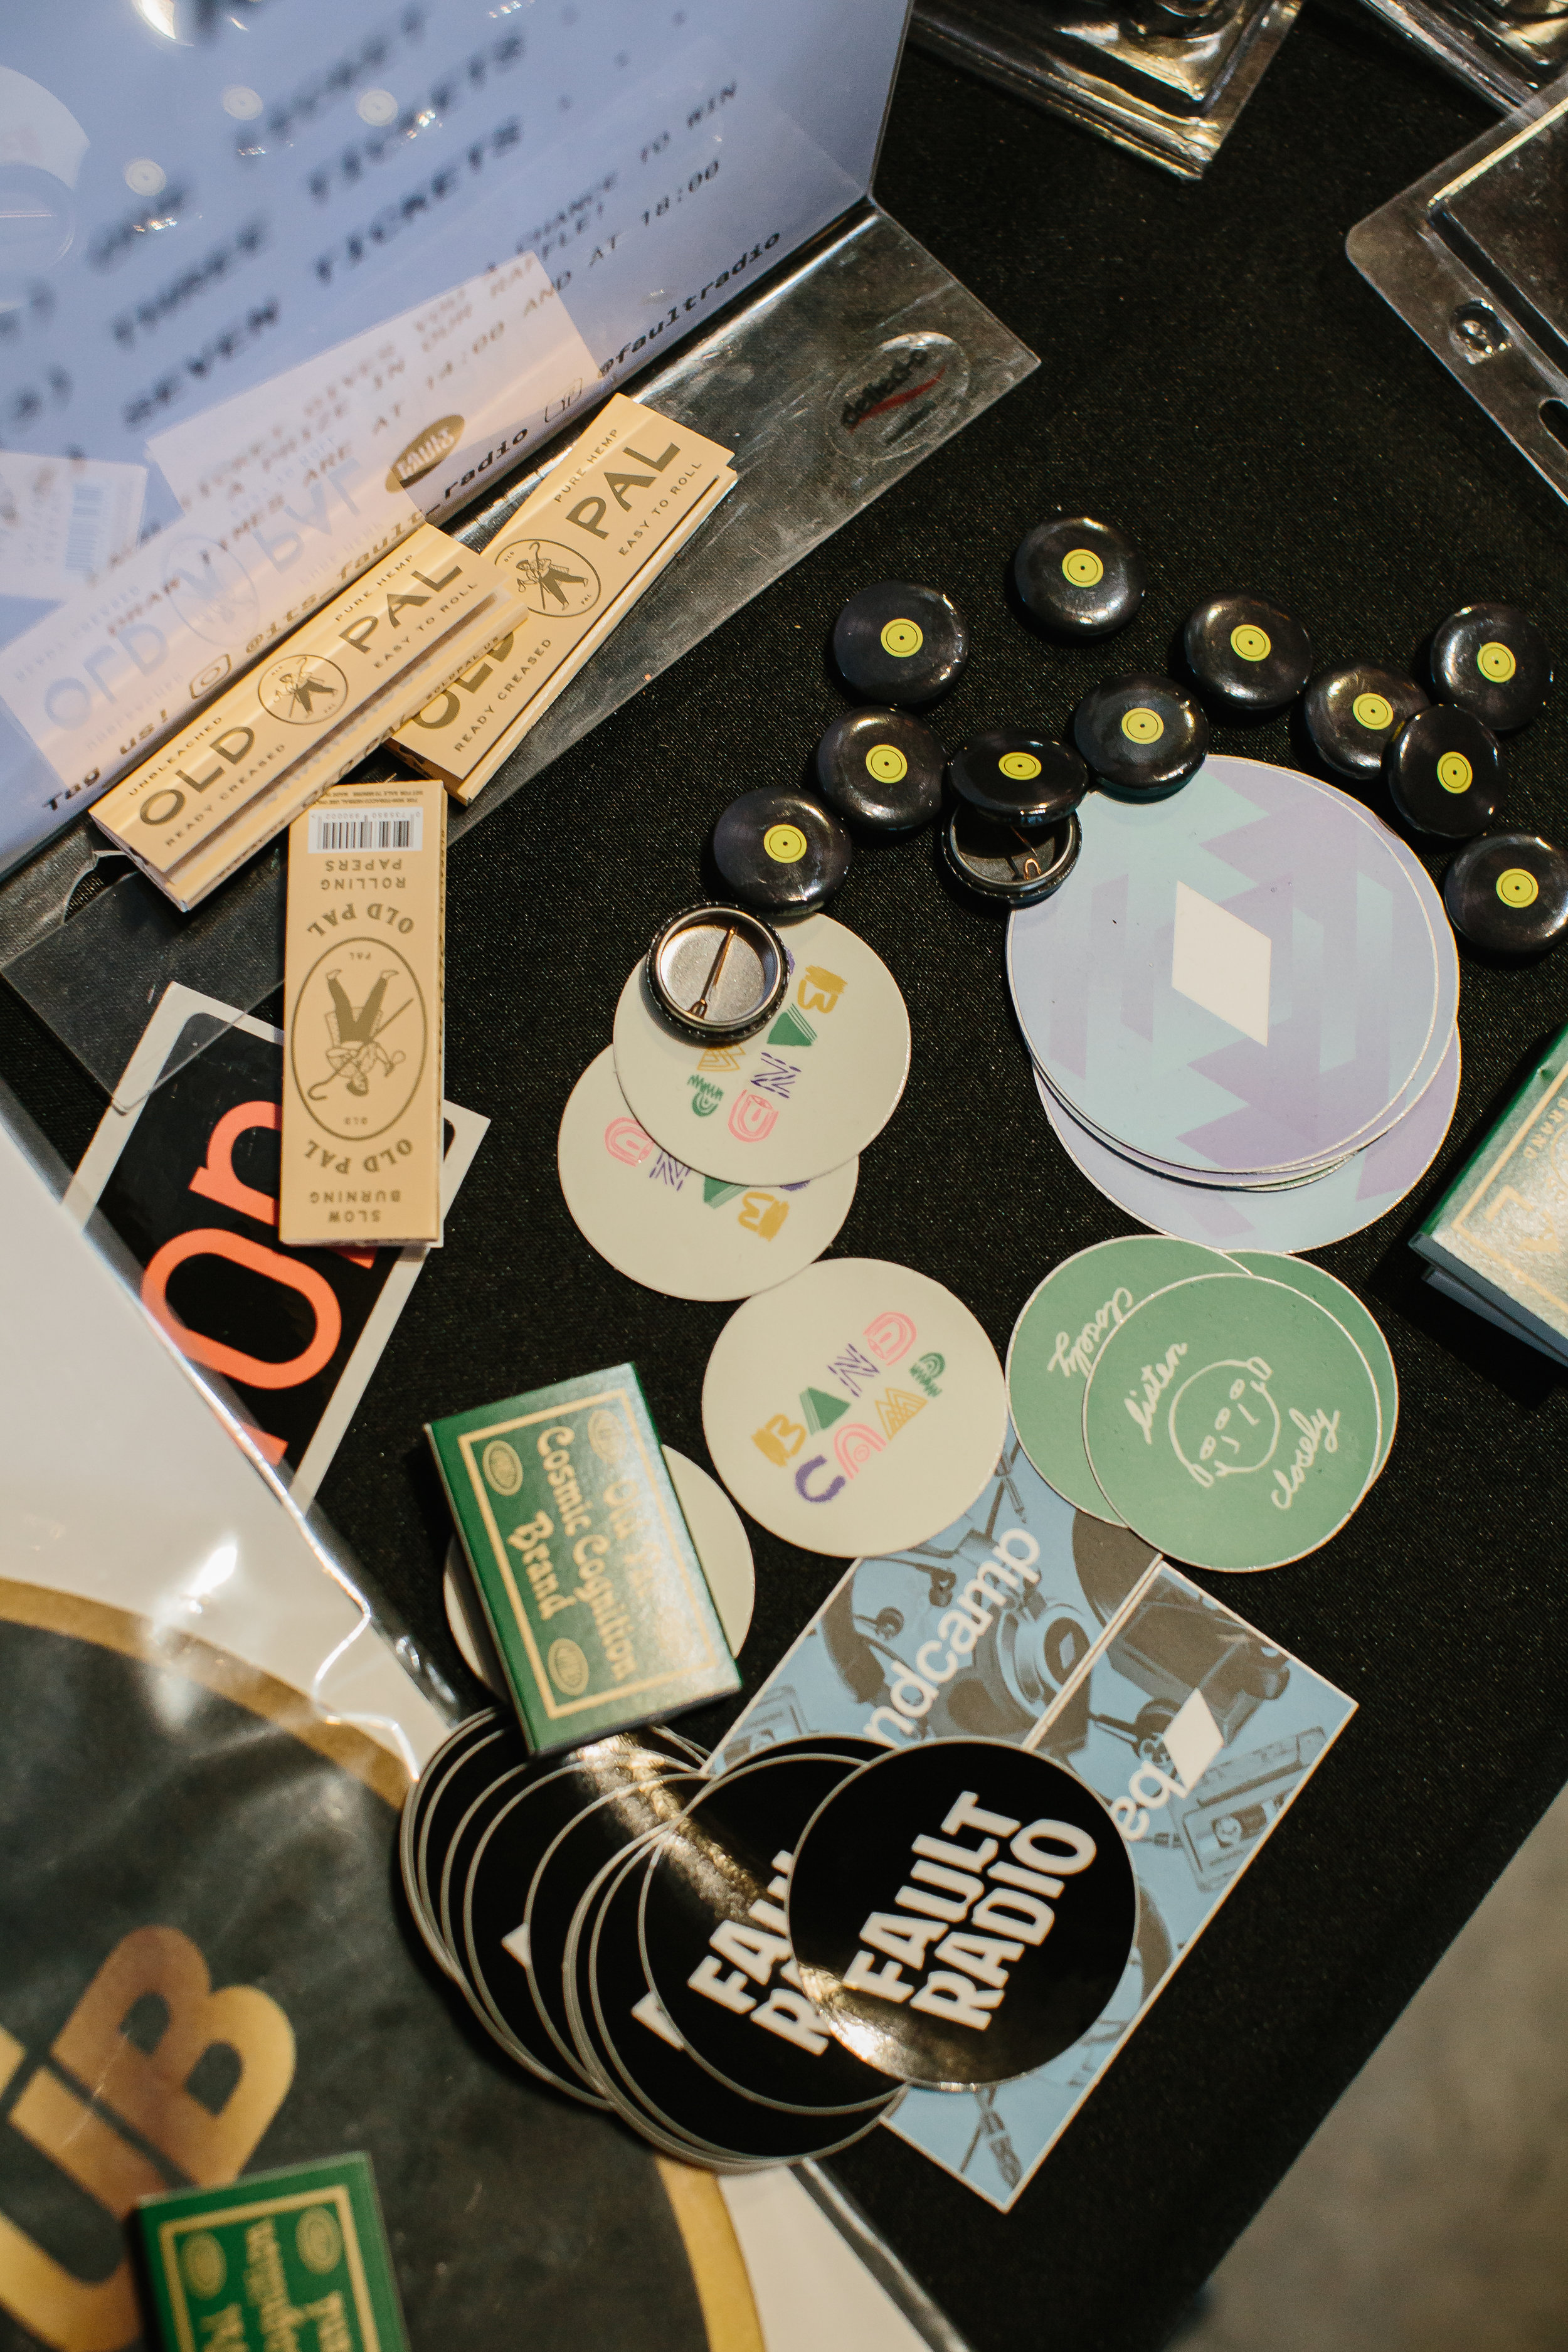 Fault Radio and Old Pal teamed up to bring the tradition of enjoying cannabis with music to the Shifting Plates Record Fair on August 17, 2019.